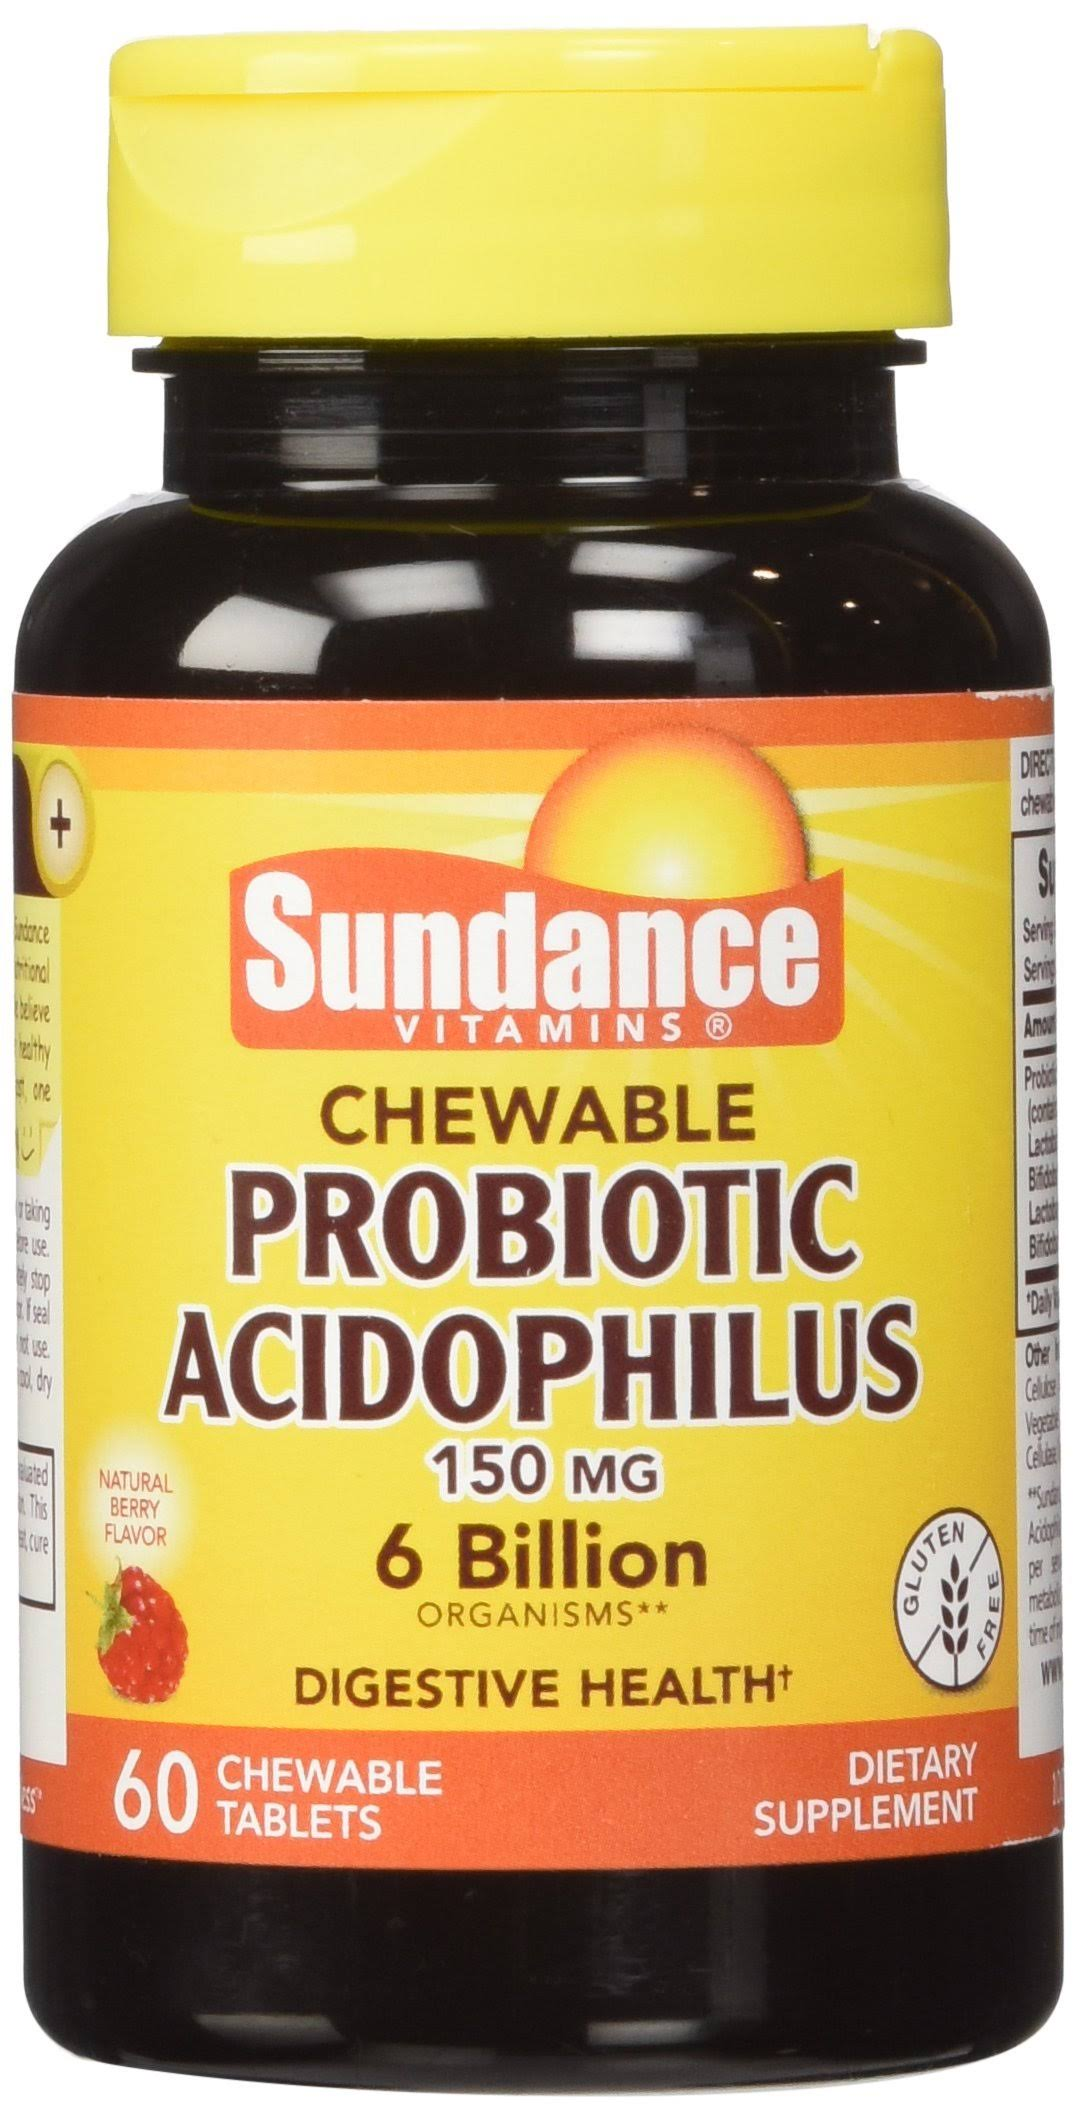 Sundance Probiotic Acidophilus - 60 Chewable Tablets